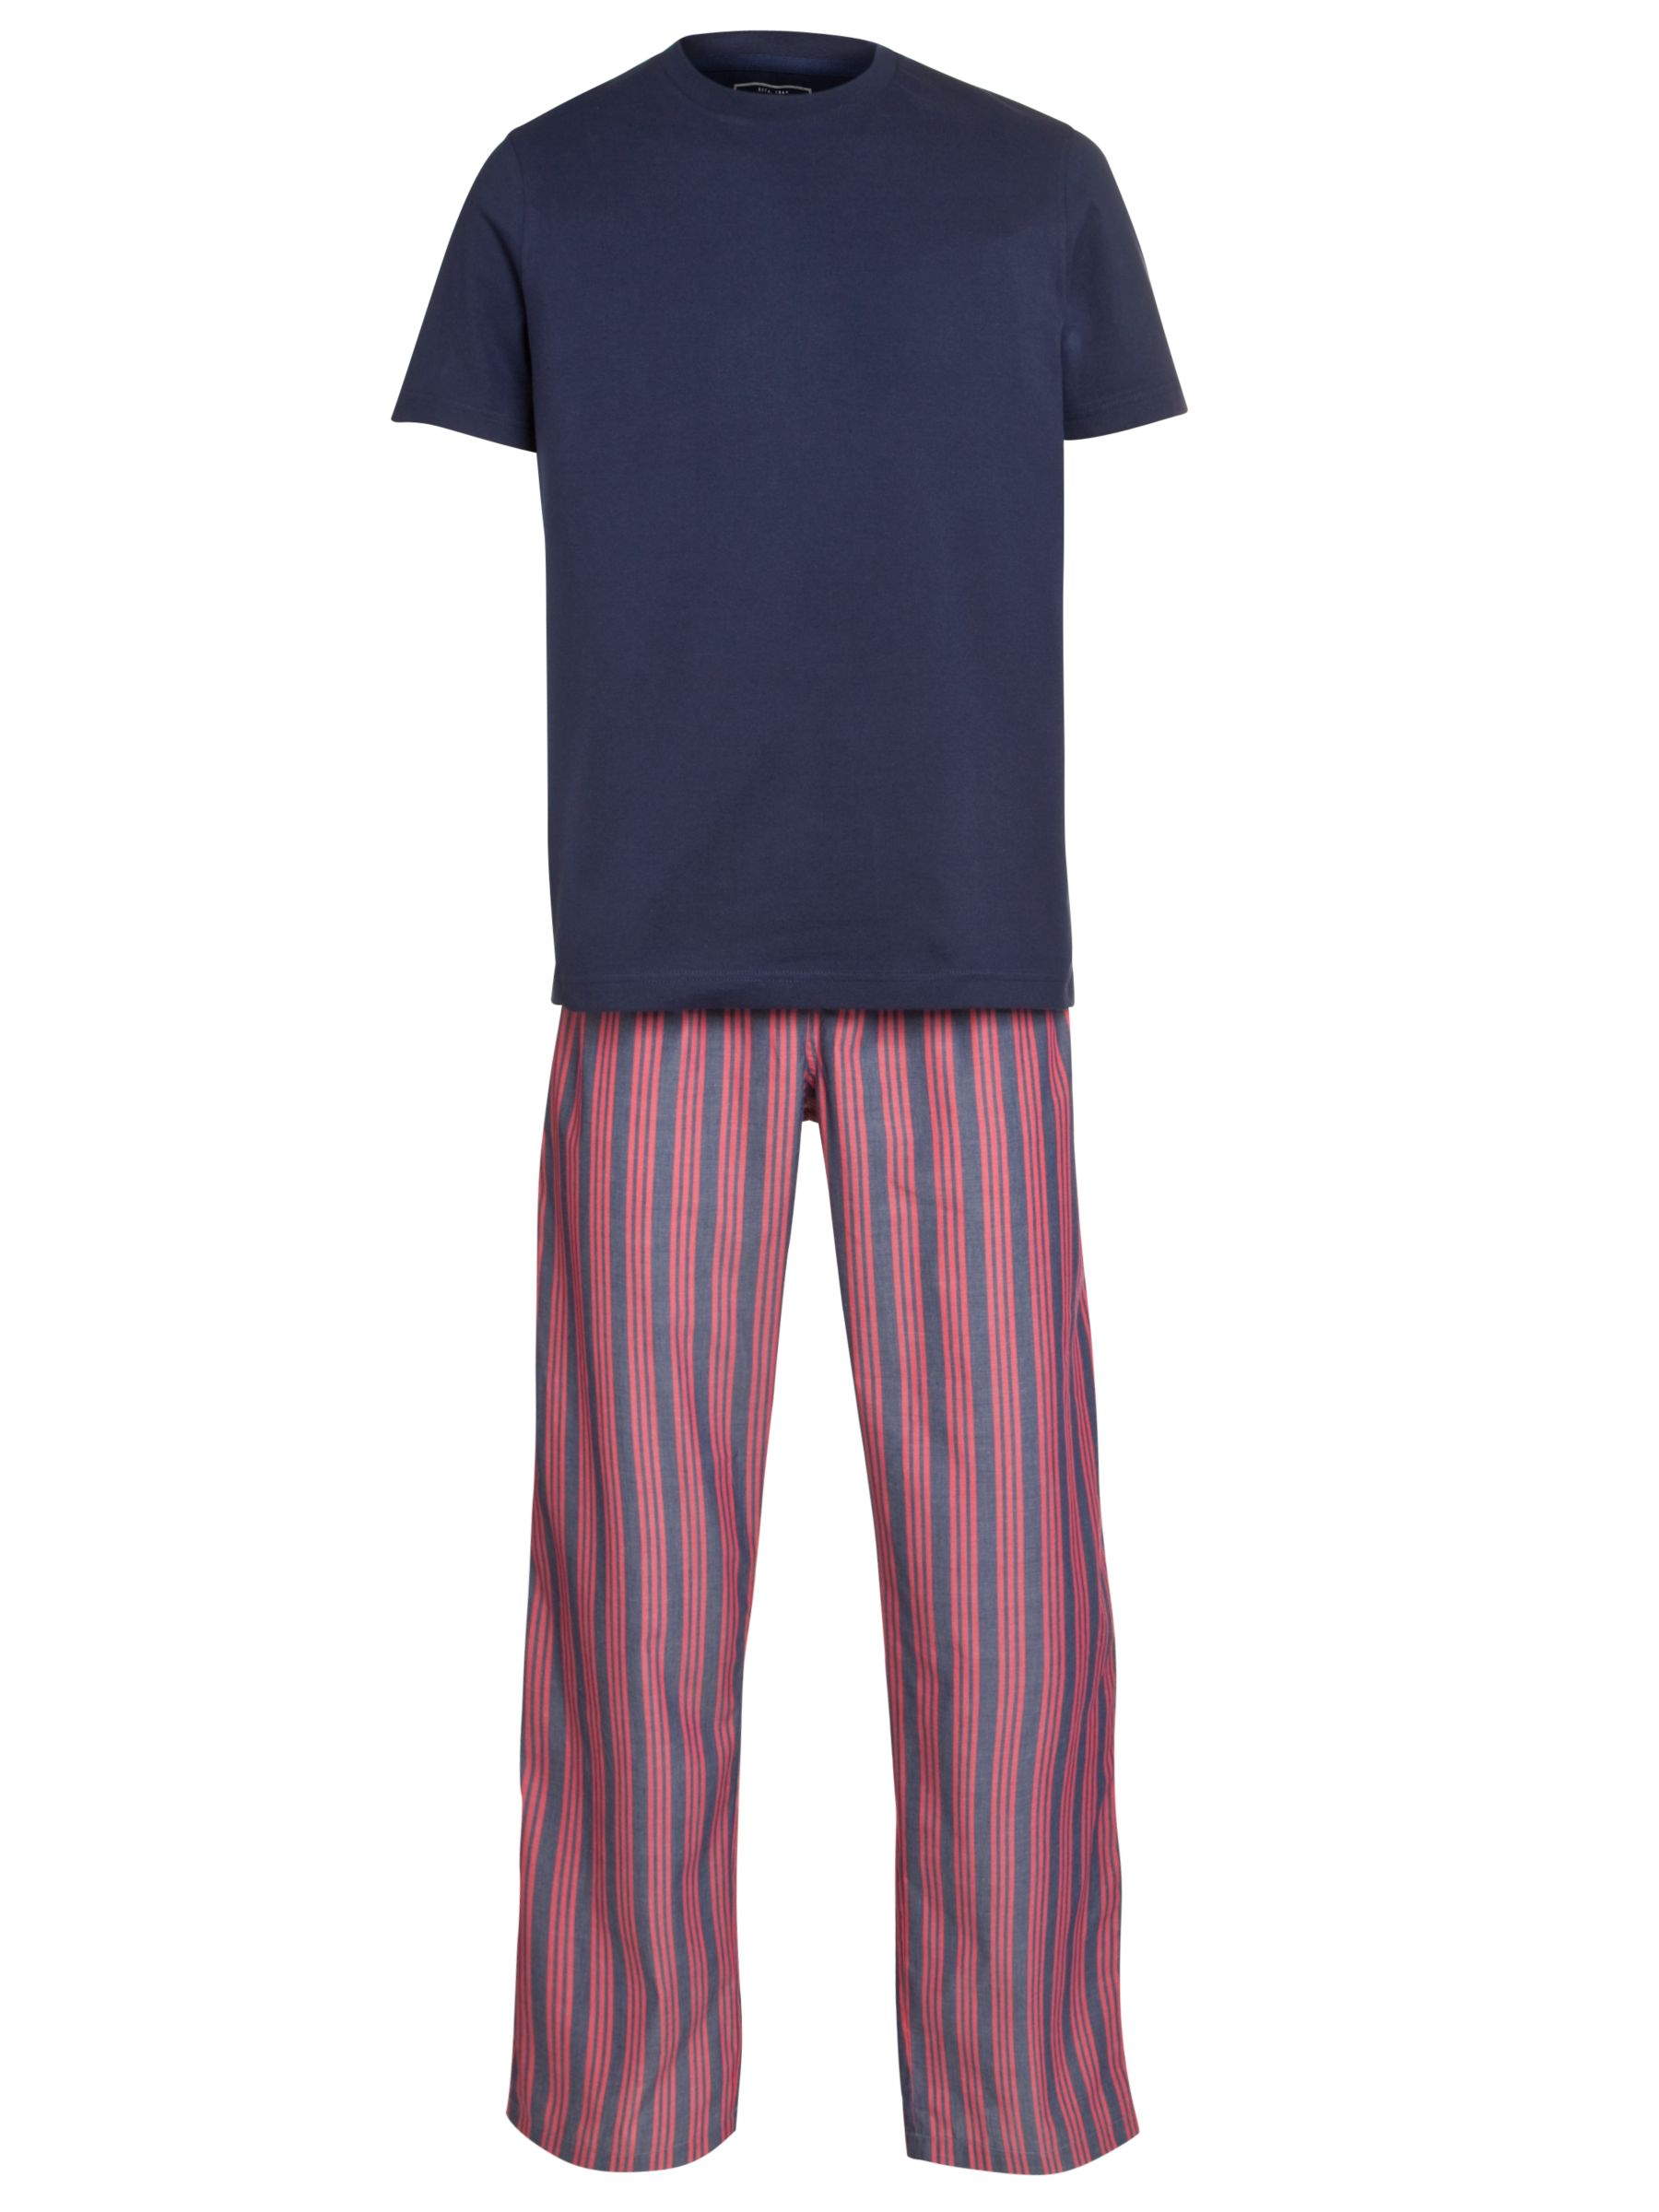 John Lewis Cotton T-Shirt and Striped Trouser Lounge Set, Navy/Red